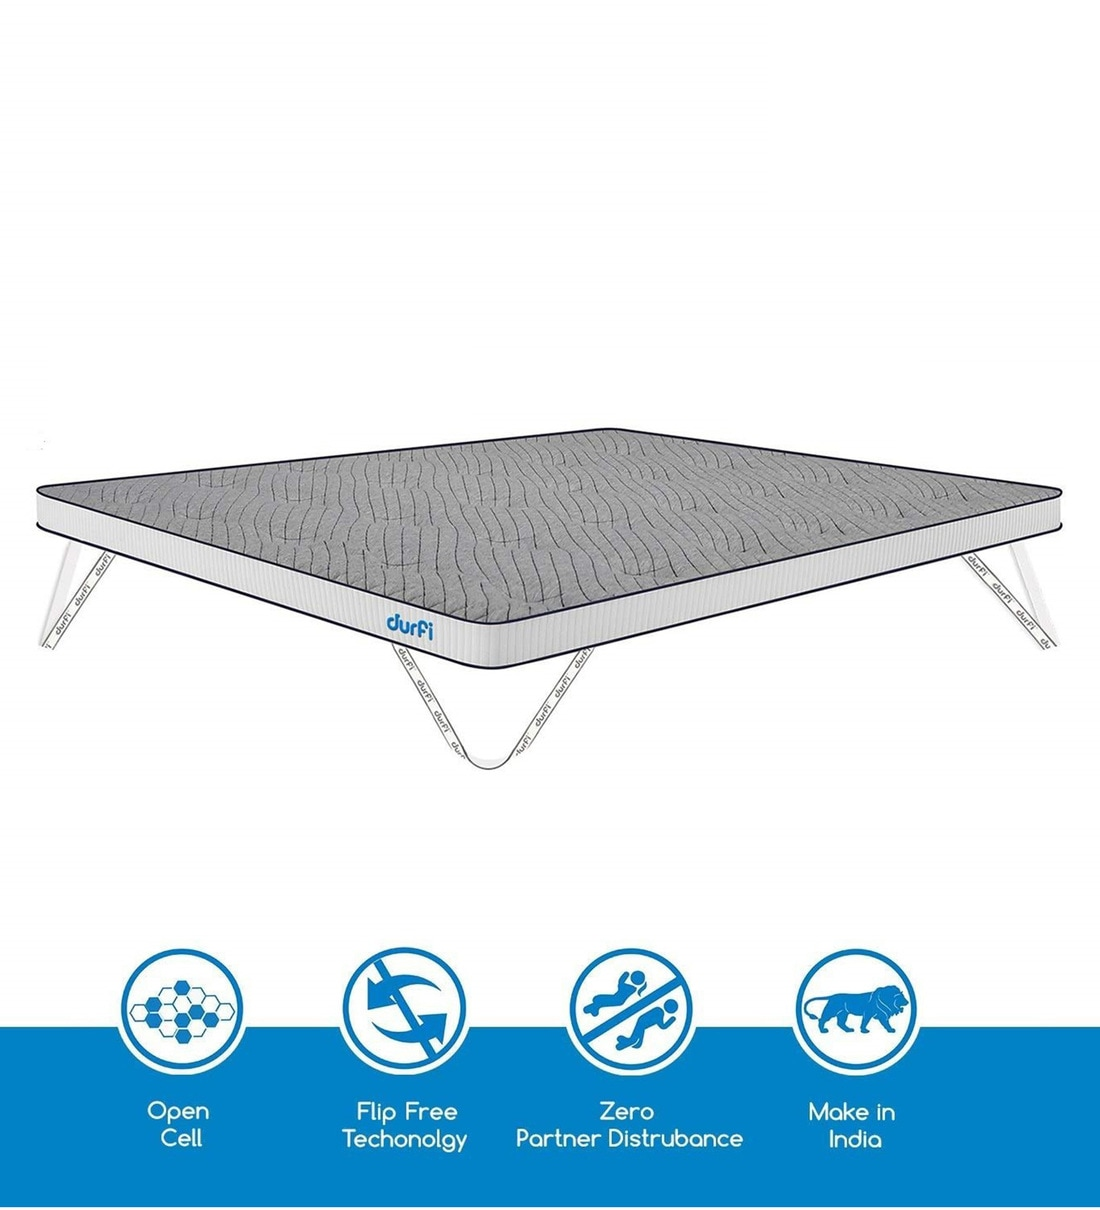 Picture of: Buy Cotton Candy Memory Foam King Size 72×72 2 Thick Firm Mattress Topper By Durfi Online King Size Mattress Toppers Mattress Toppers Mattresses Pepperfry Product